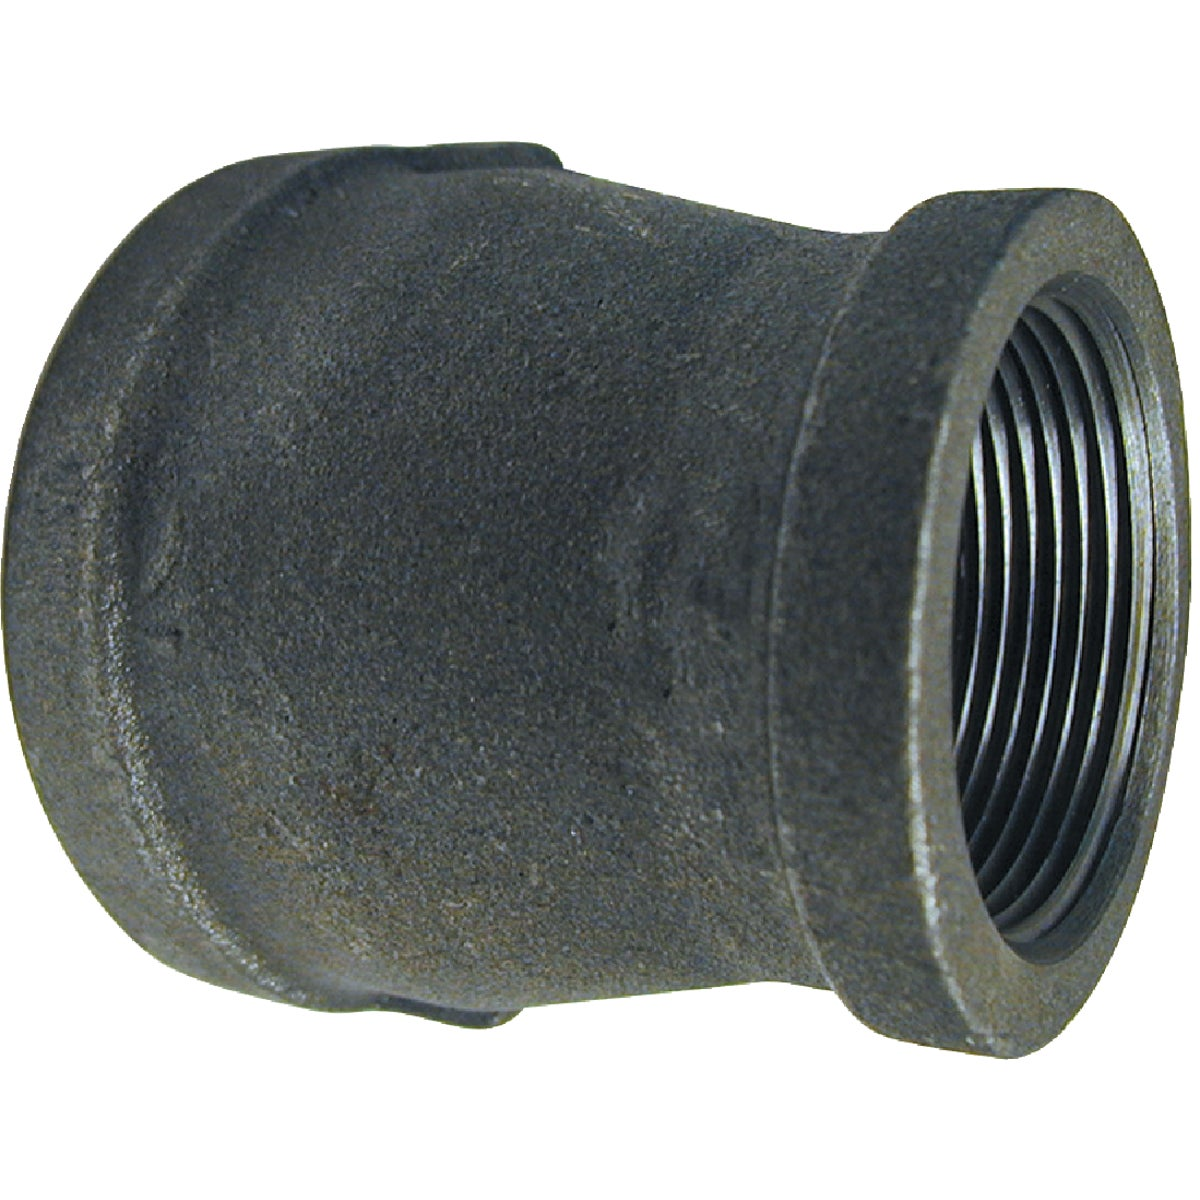 3/4X3/8 BLACK COUPLING - 521-342BG by Mueller B K